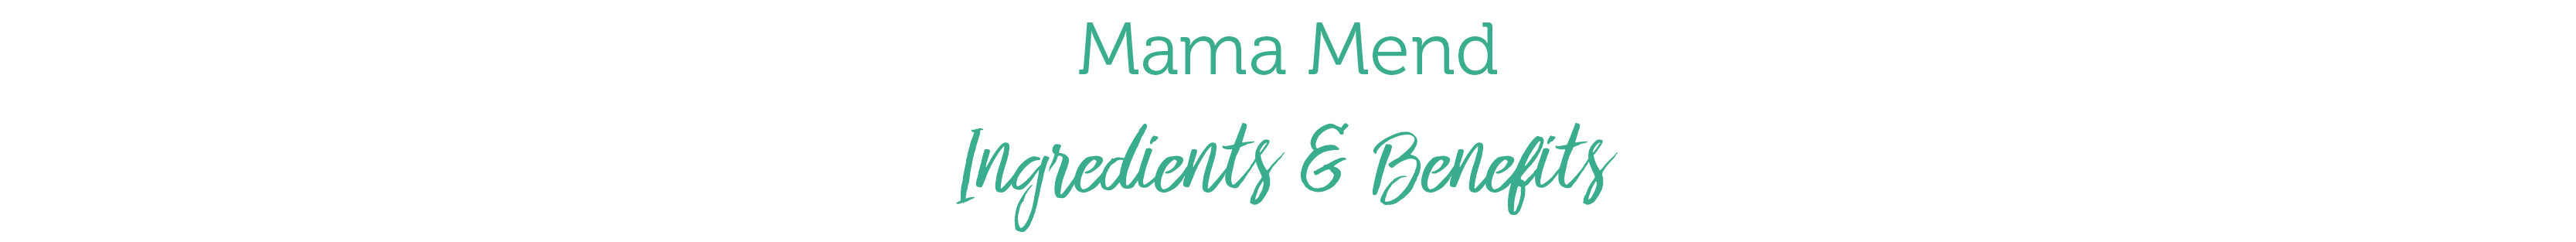 Mama Mend Ingredients & Benefits